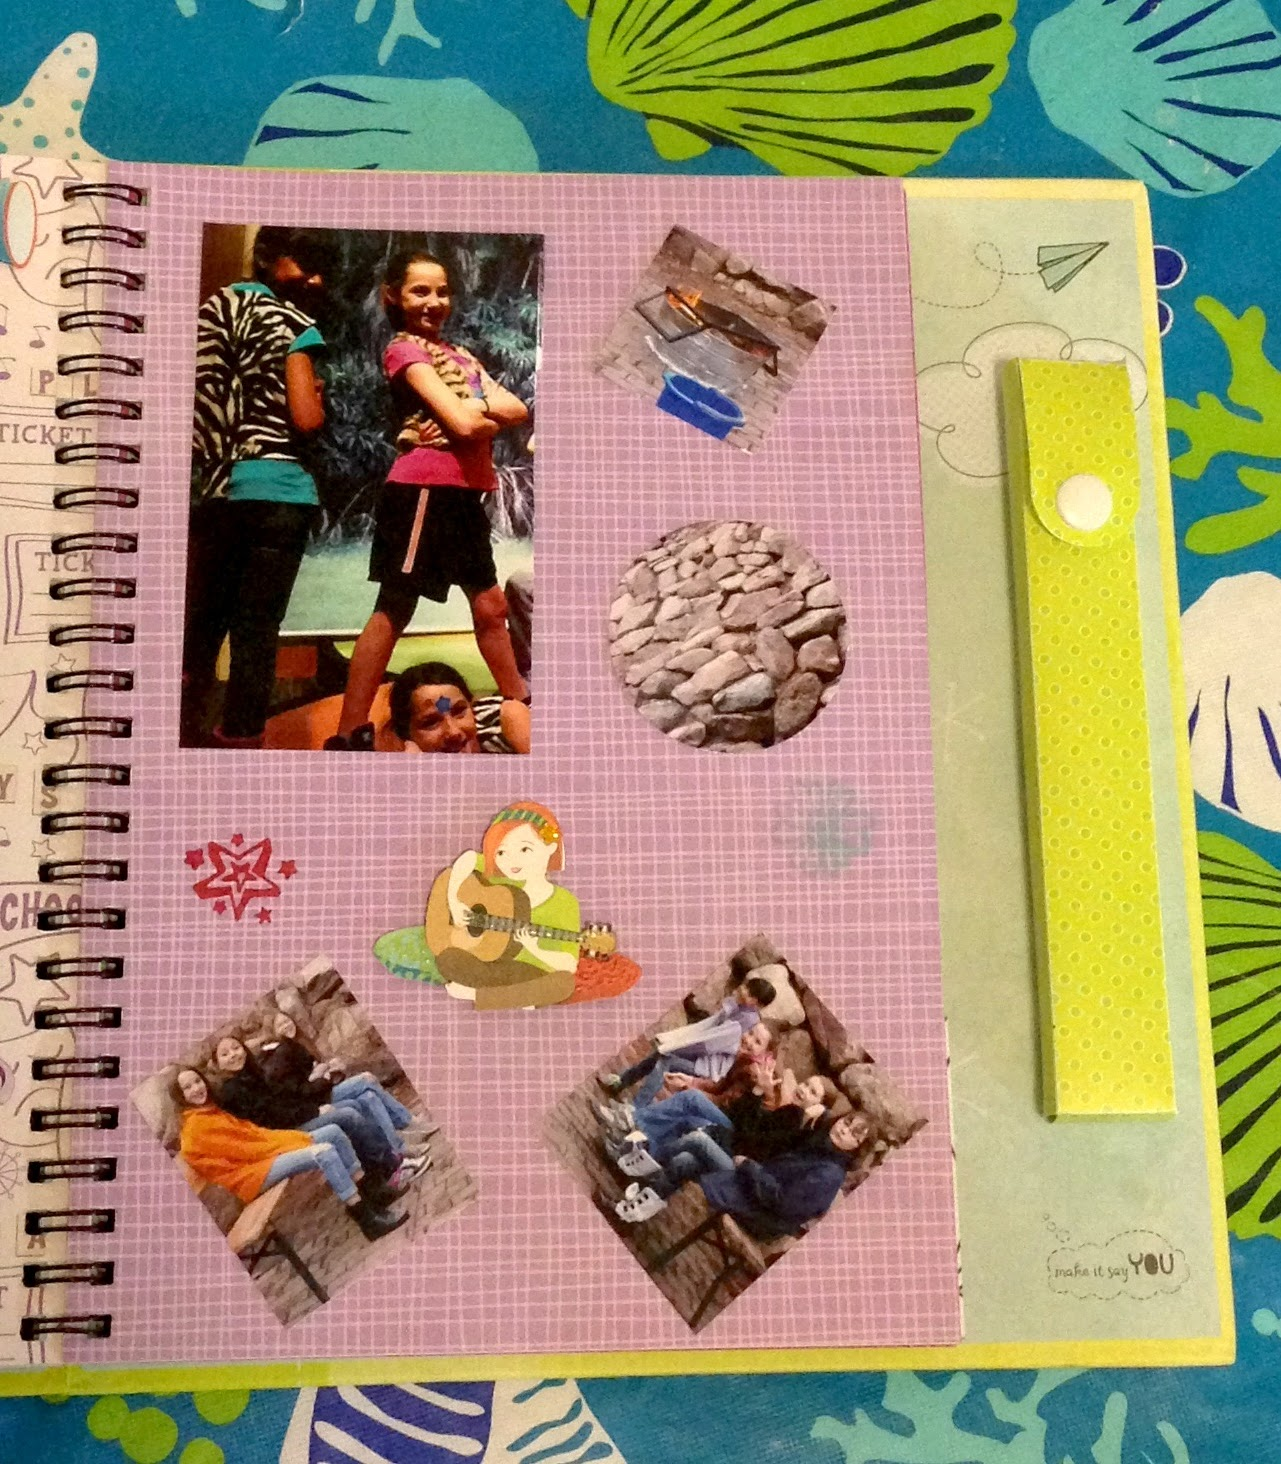 Scrapbook ideas list - Faith May Now Have A New Hobby And Definitely Has A List Of Birthday Ideas She Has Made A Ton Of Pages Since That Night And Has Been Uploading Pictures